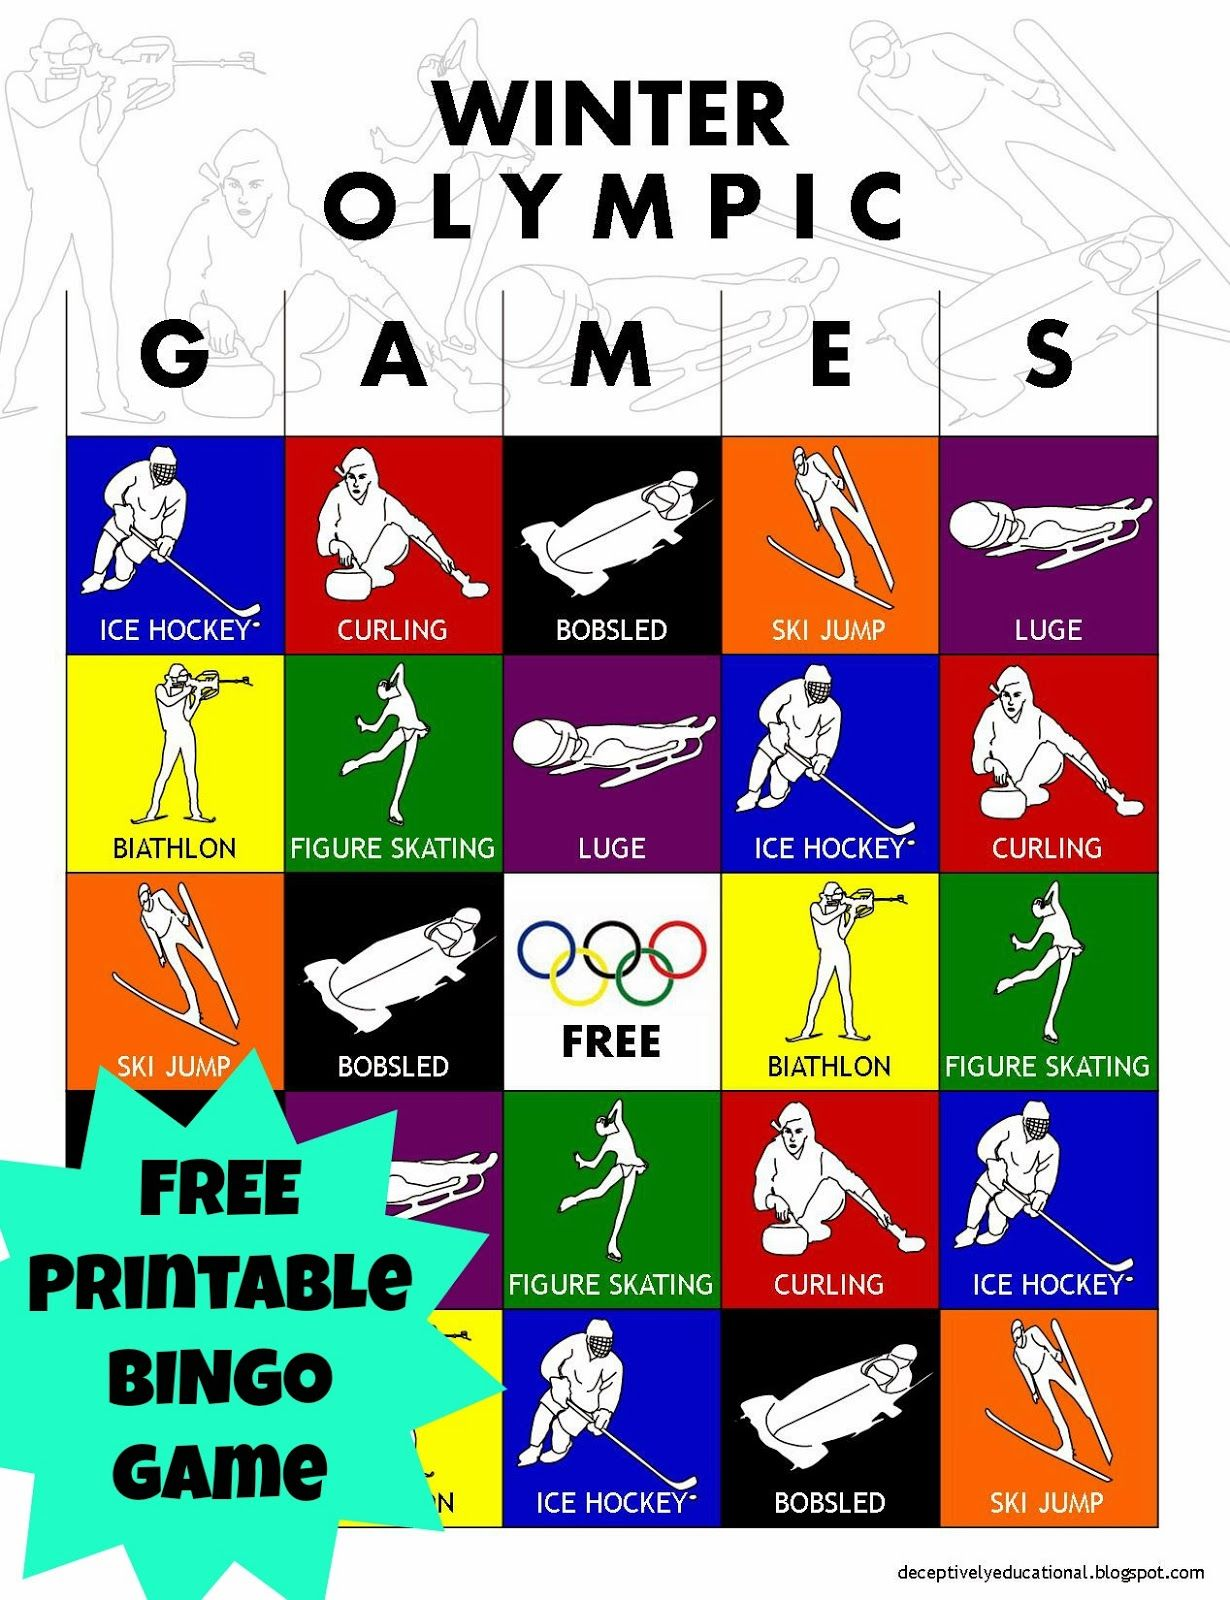 Relentlessly Fun Deceptively Educational Olympic Winter